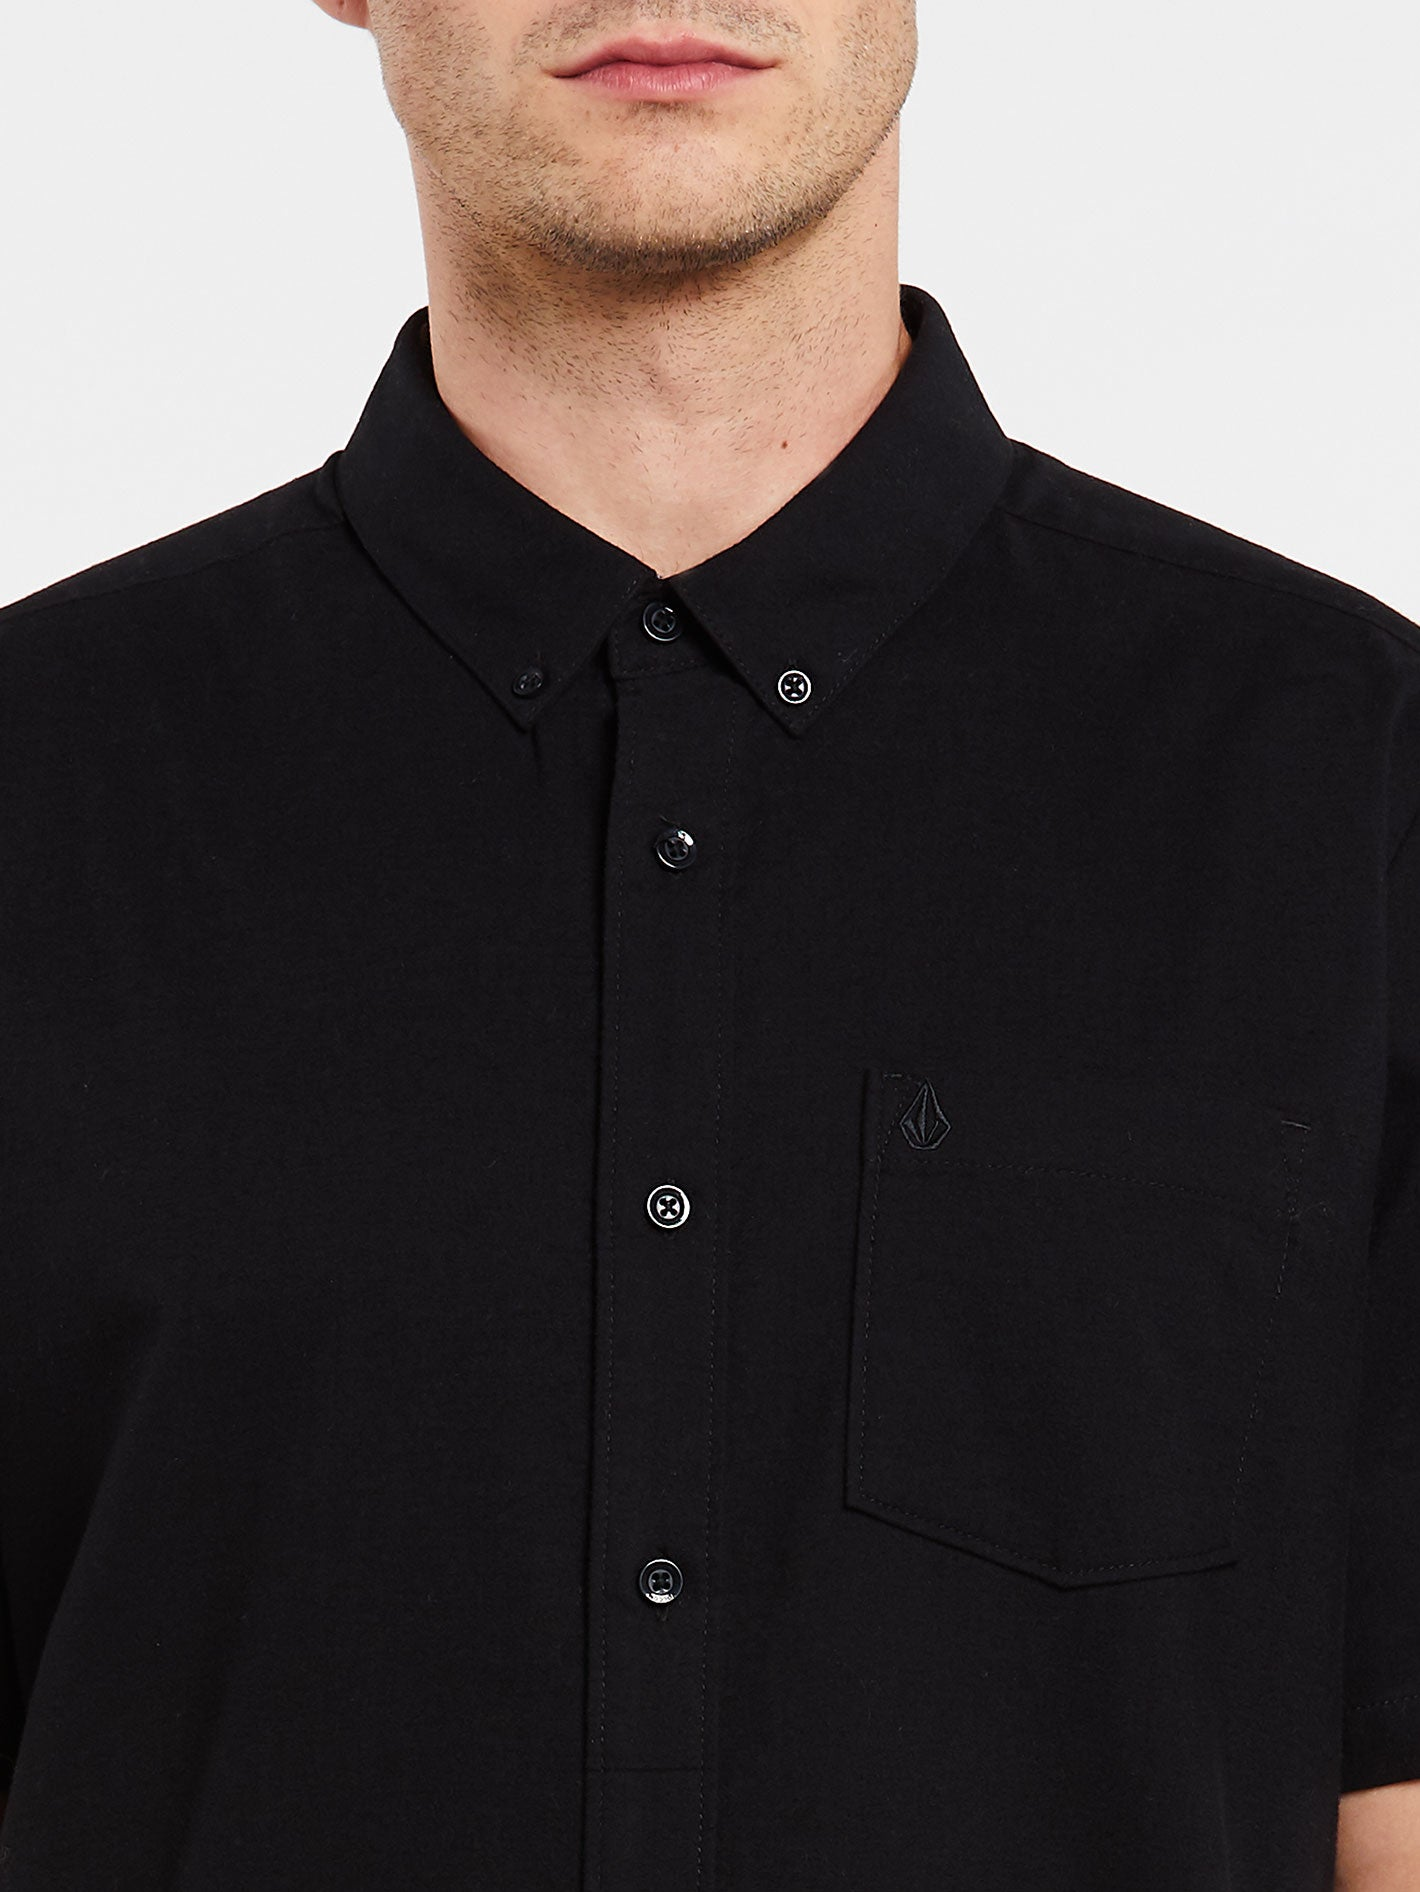 bc7be3e1101c1e Everett Oxford Short Sleeve Shirt - New Black in NEW BLACK - Alternative  View